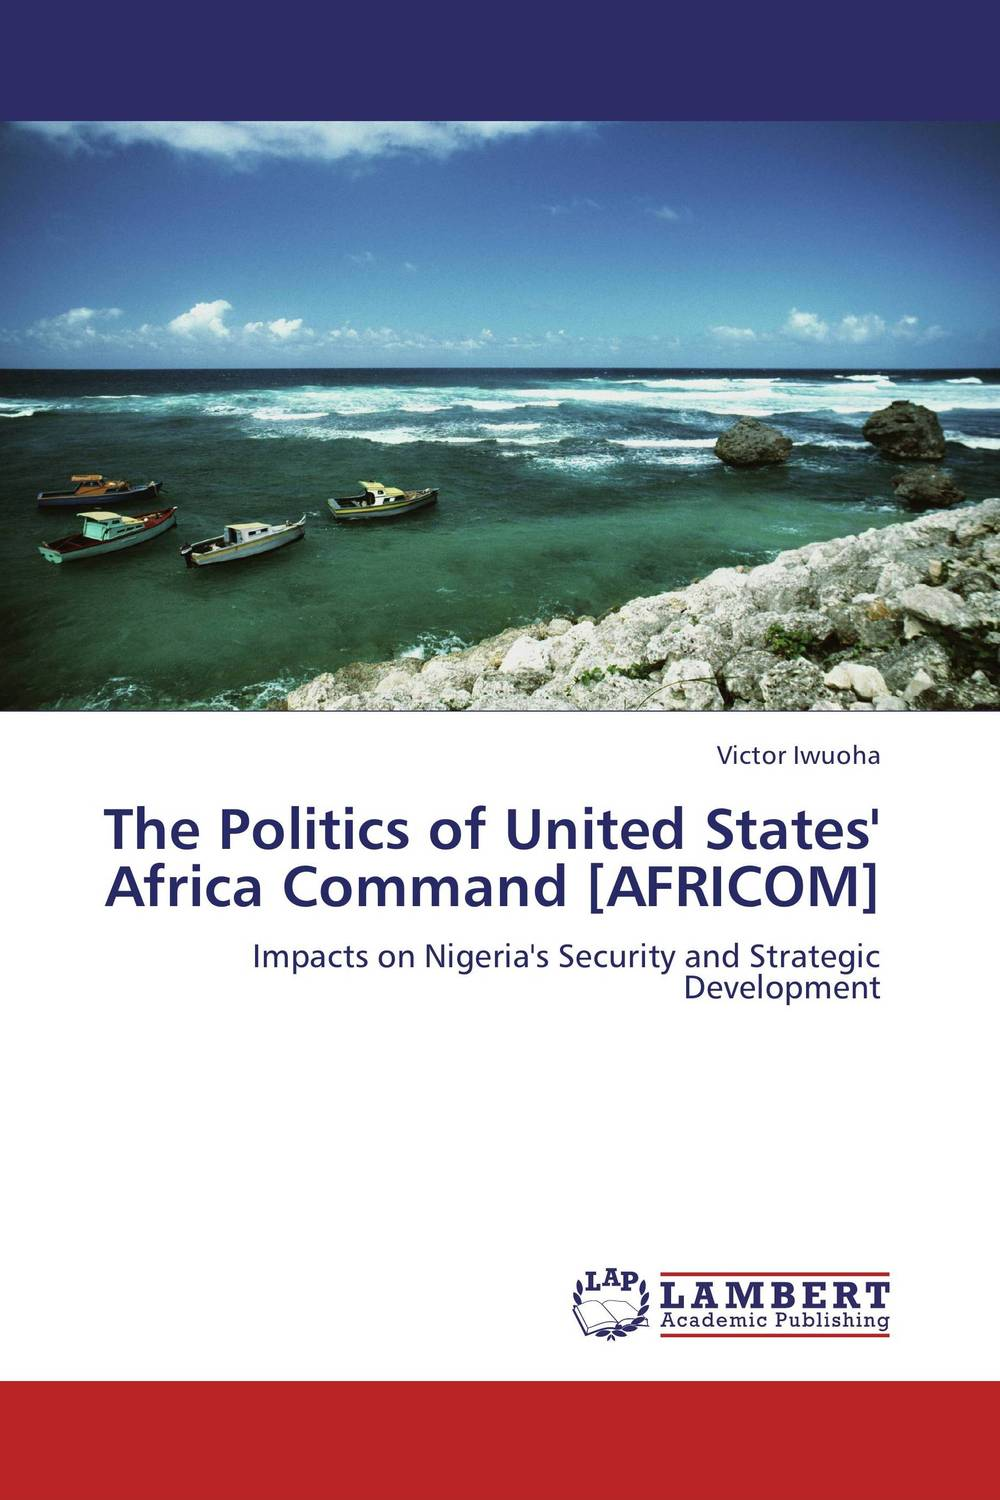 купить The Politics of United States' Africa Command [AFRICOM] недорого